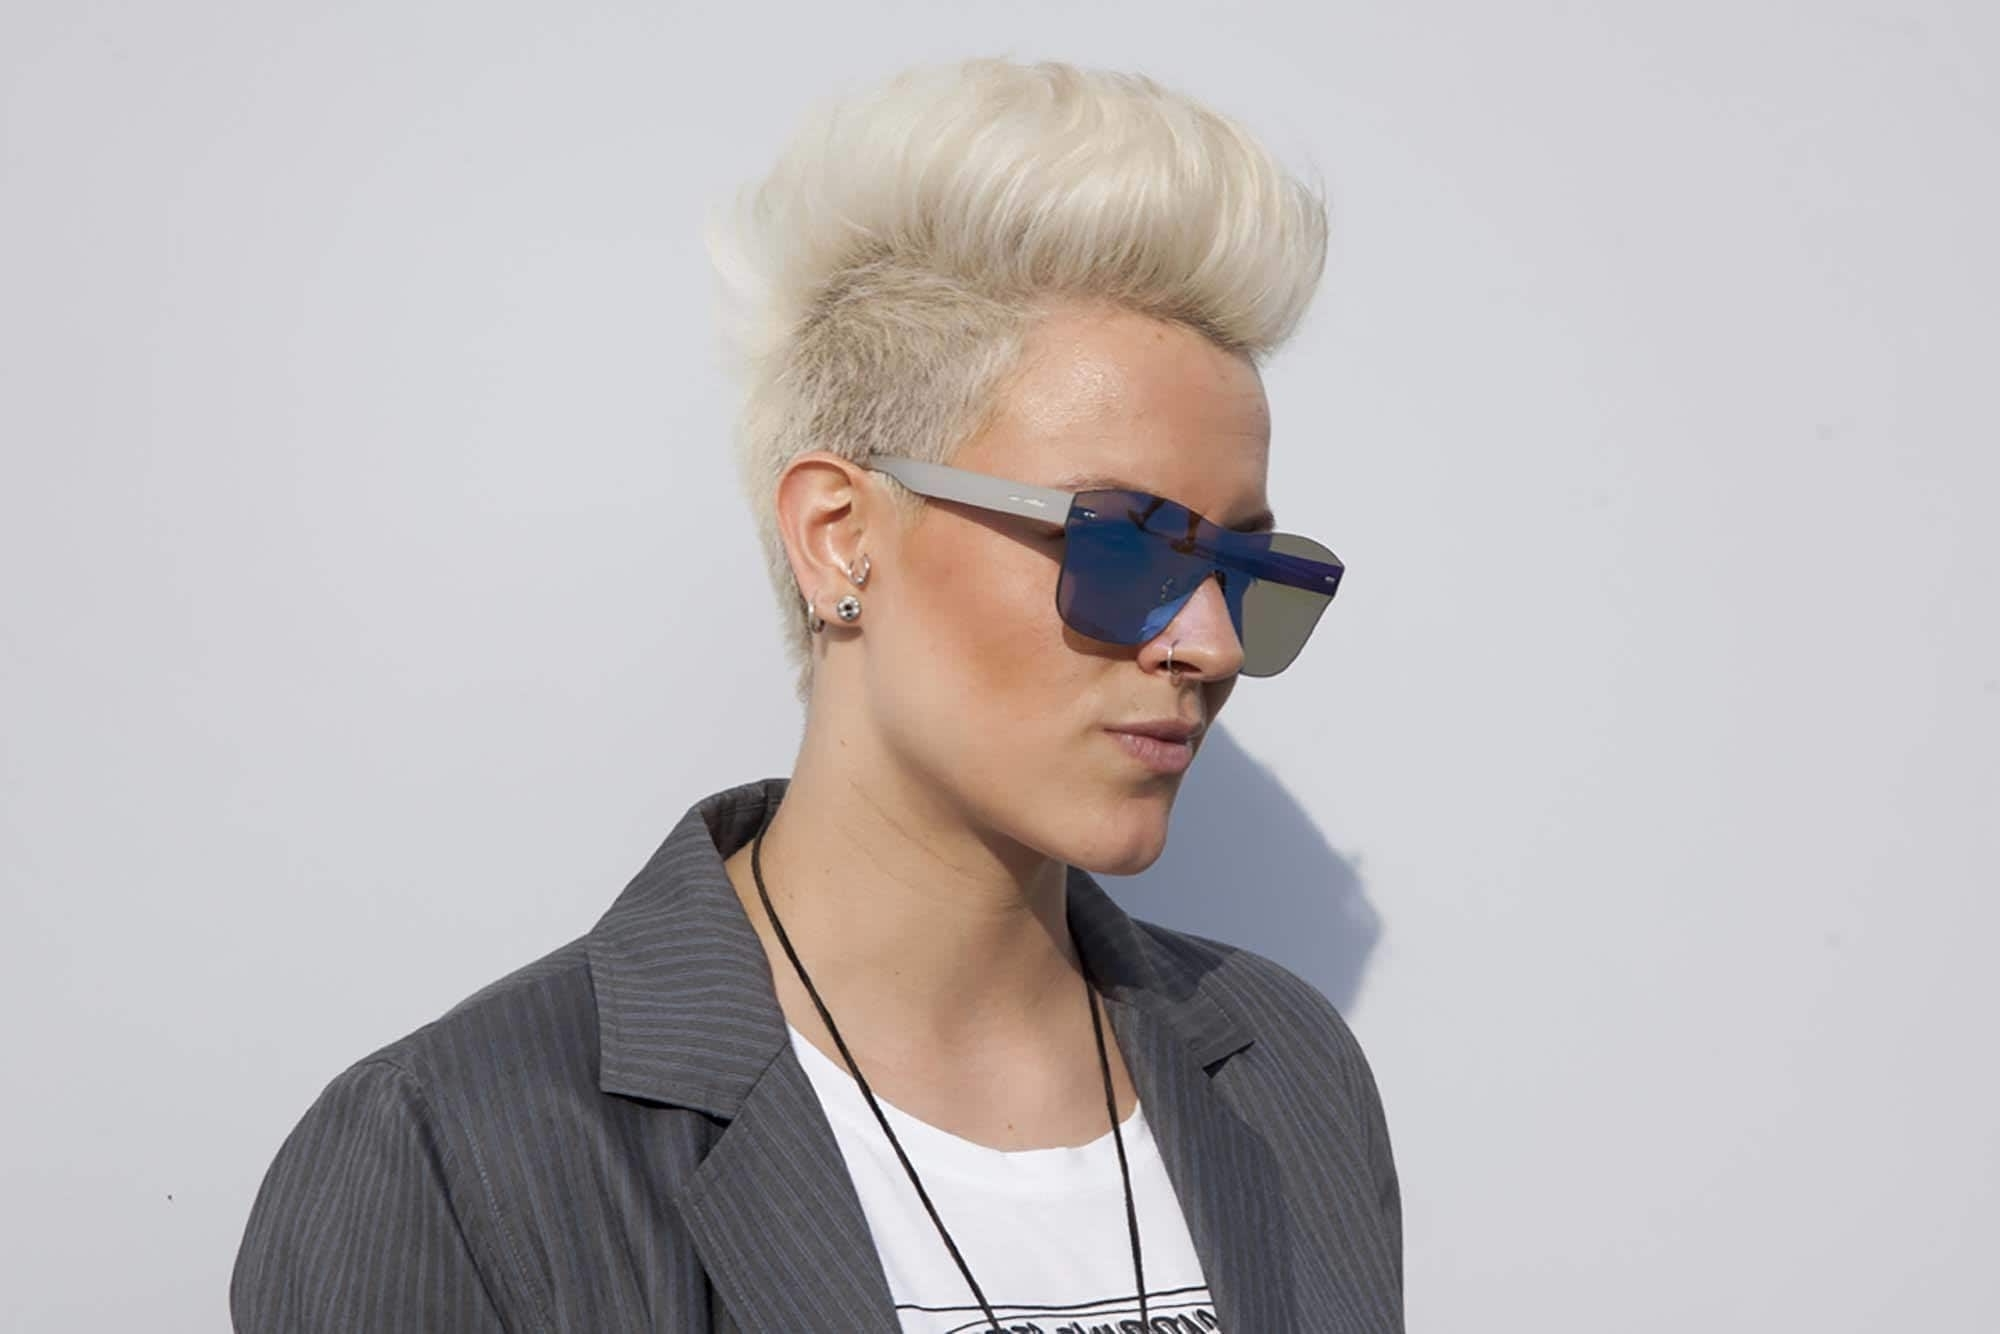 Short Spiky Haircuts For Women: 5 Edgy Hair Trends For Short Hair With Regard To Most Up To Date Spiked Blonde Mohawk Hairstyles (View 8 of 20)